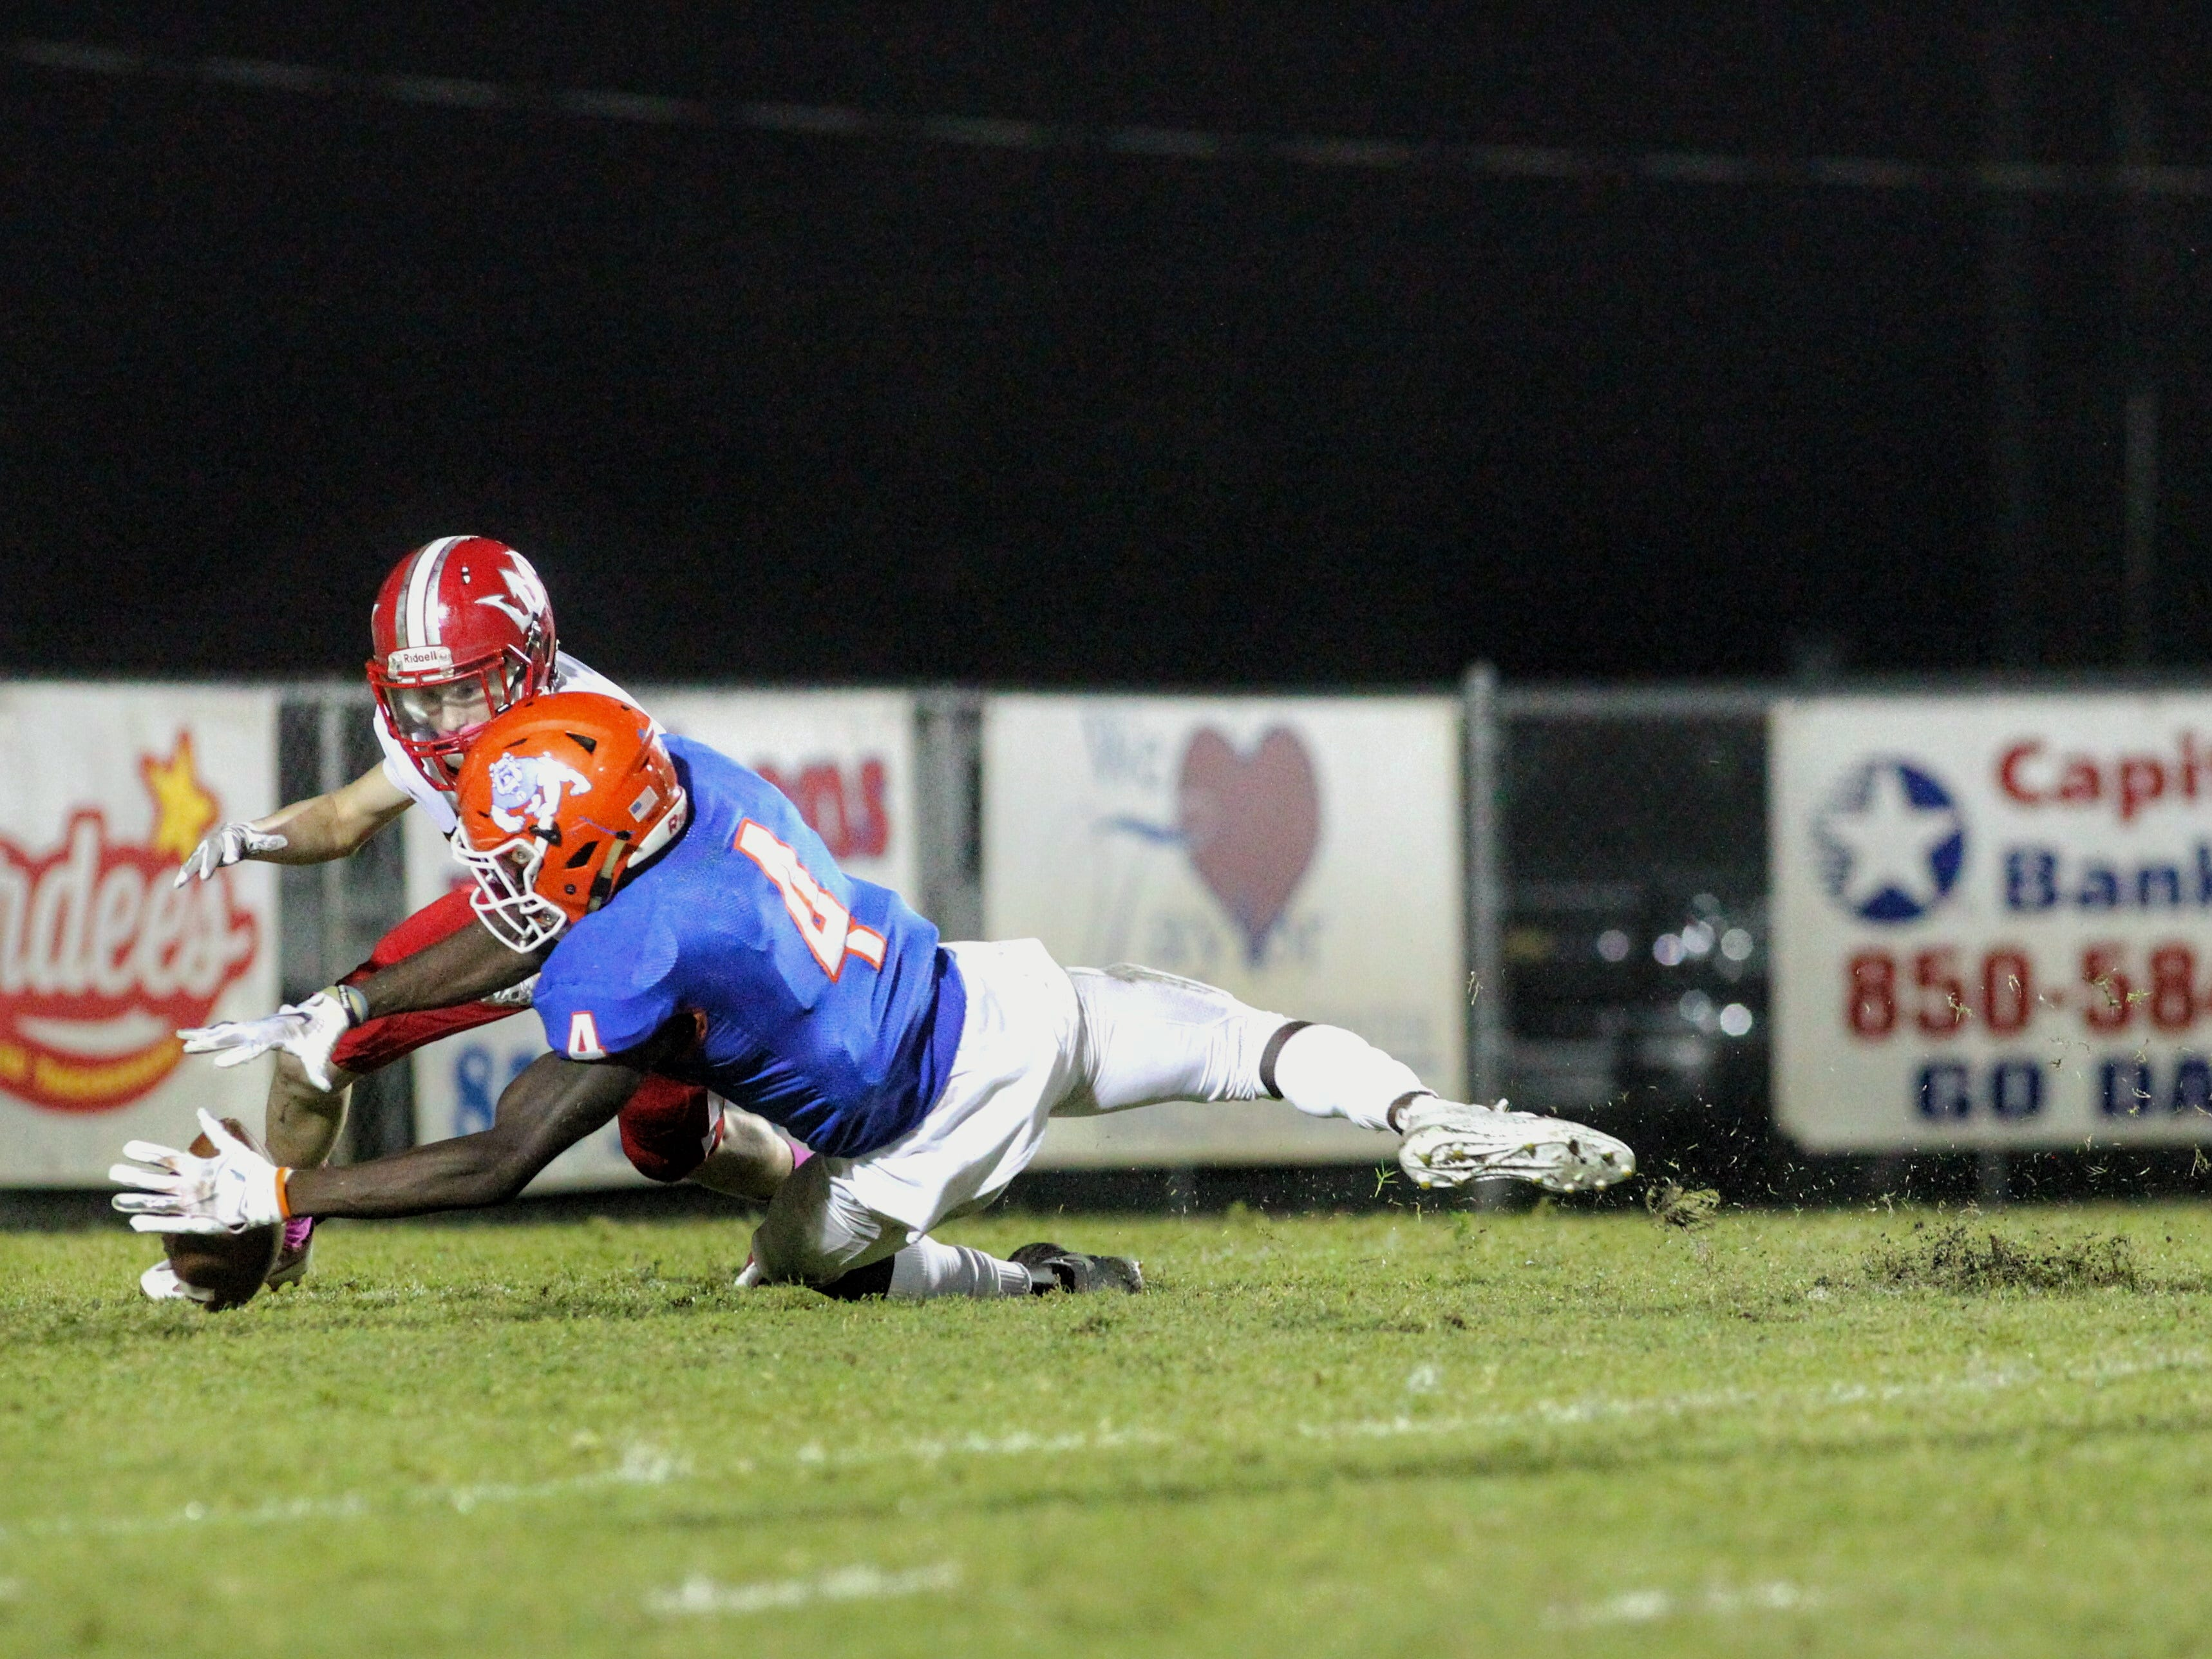 Taylor County's Devante Glover dives on a fumbled punt snap in the end zone for a touchdown during thbe Bulldogs' 35-6 win over Williston.